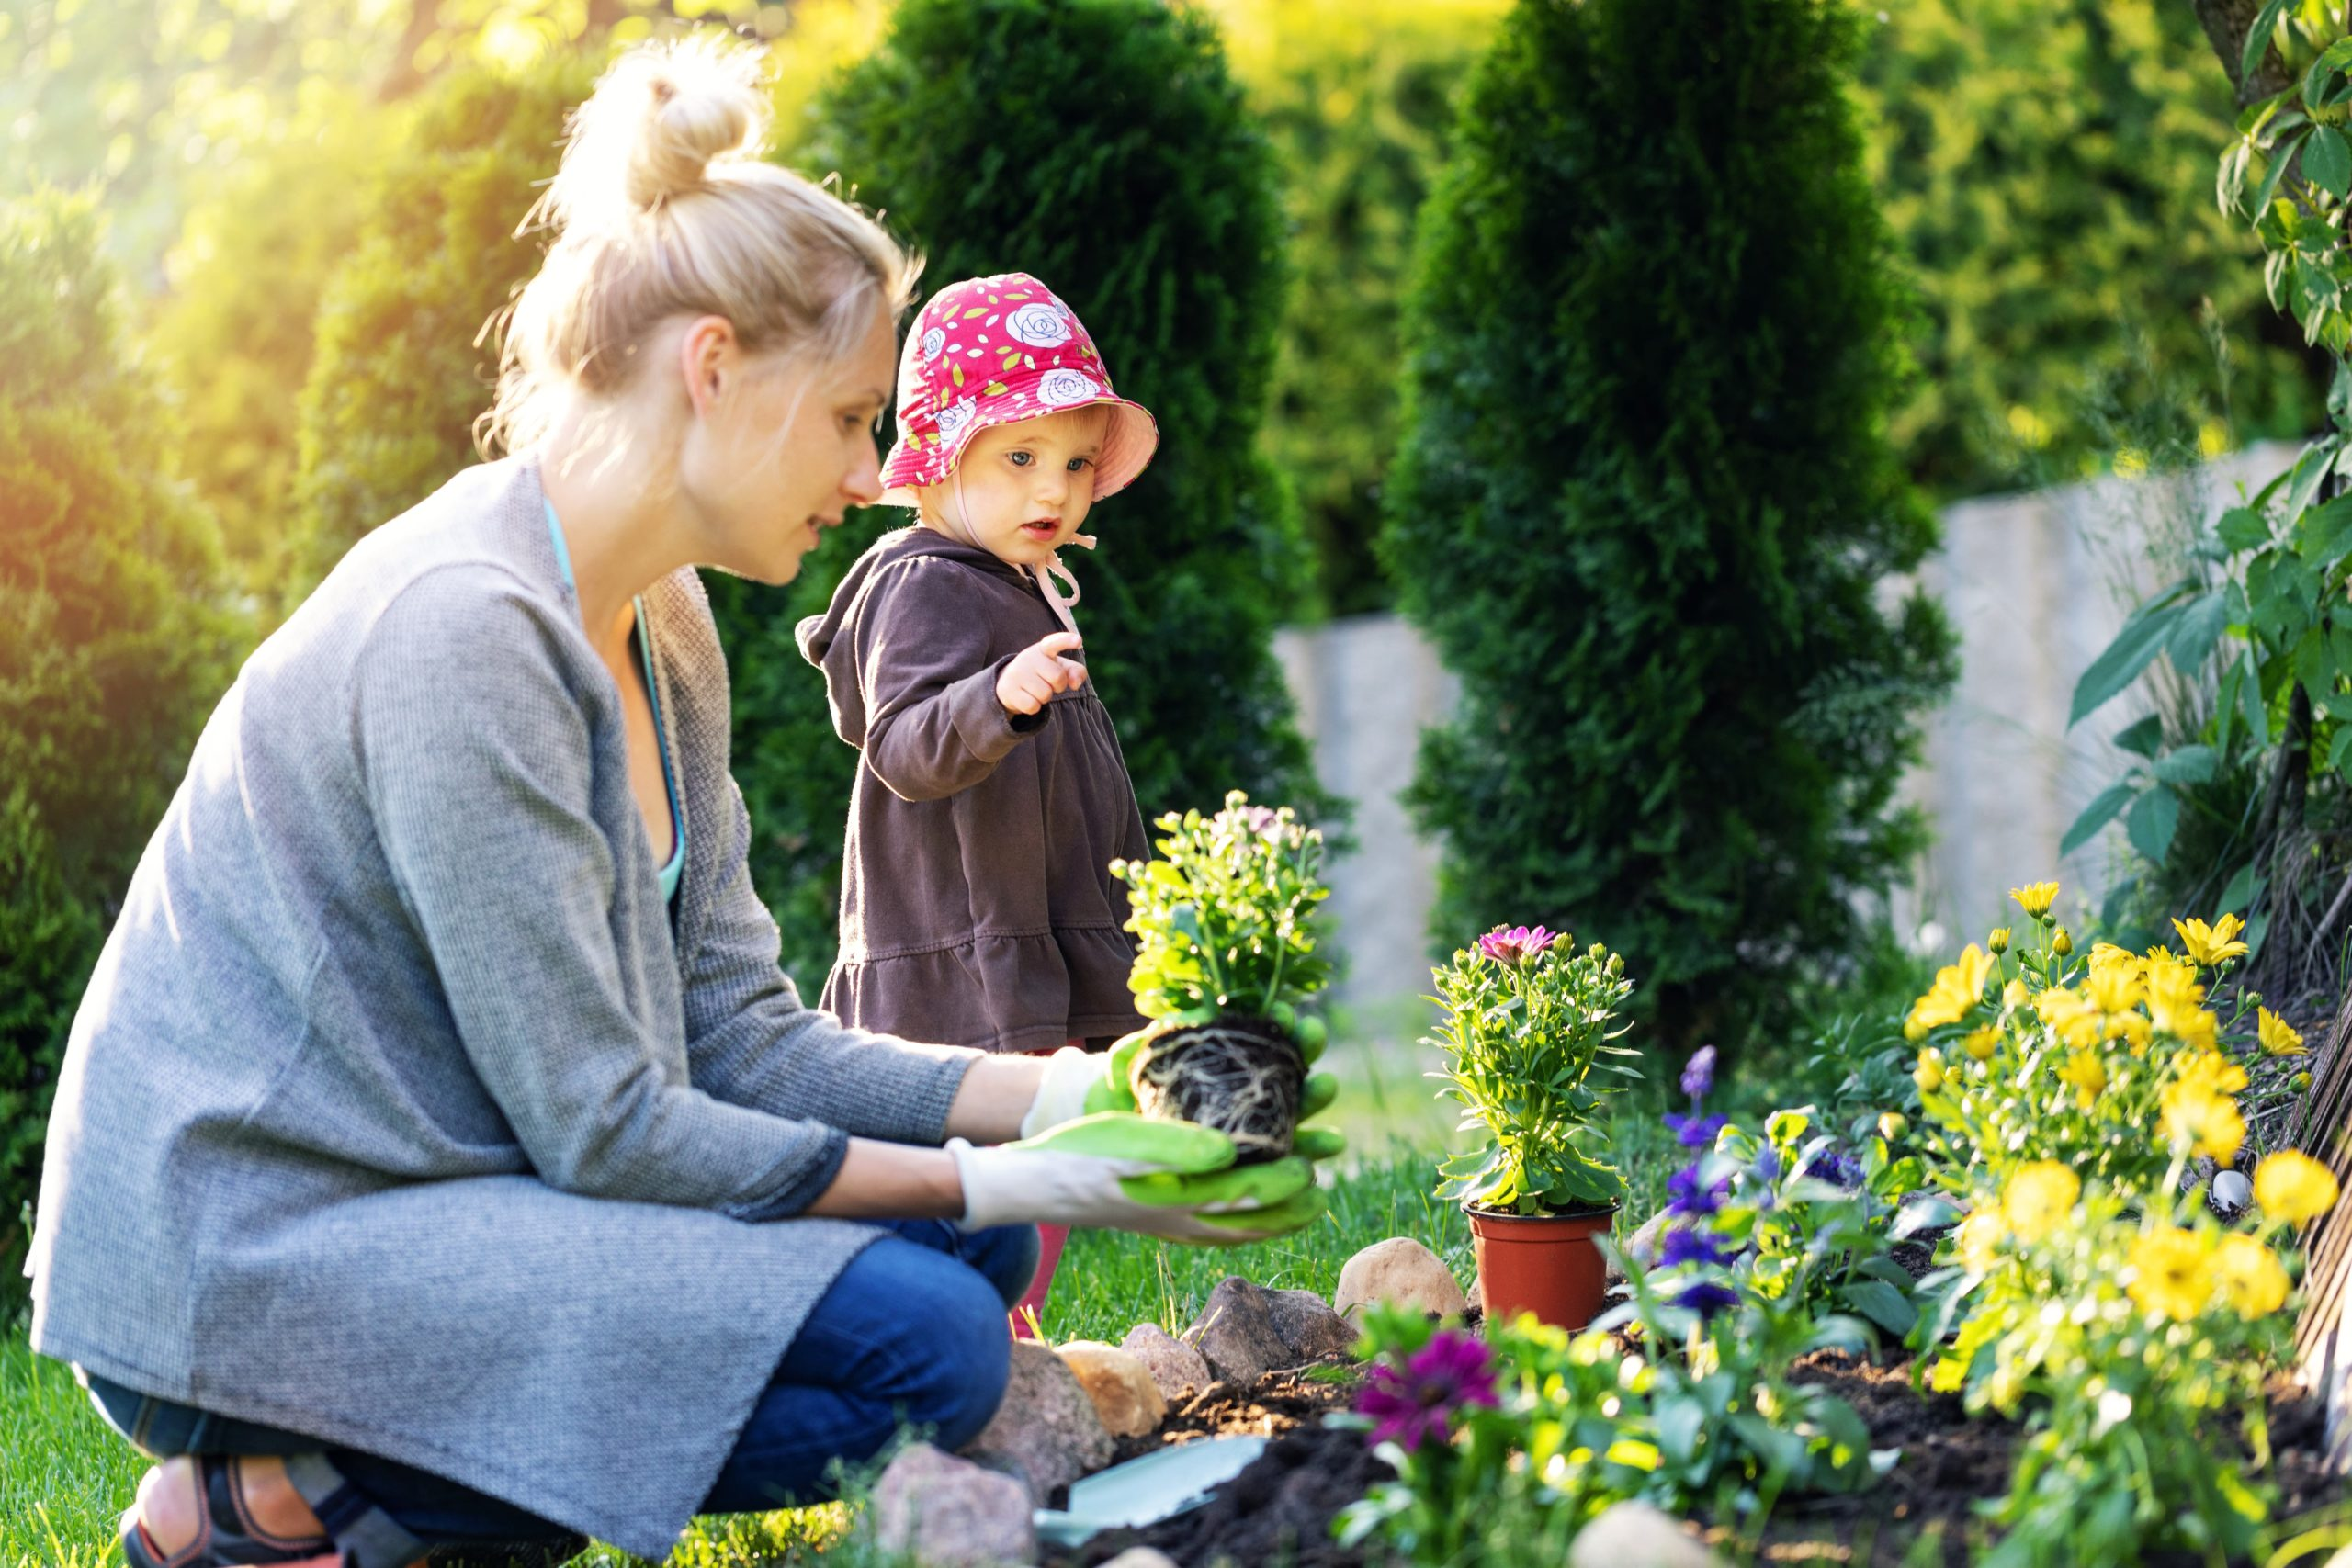 Gardening with small kids can be fun too!